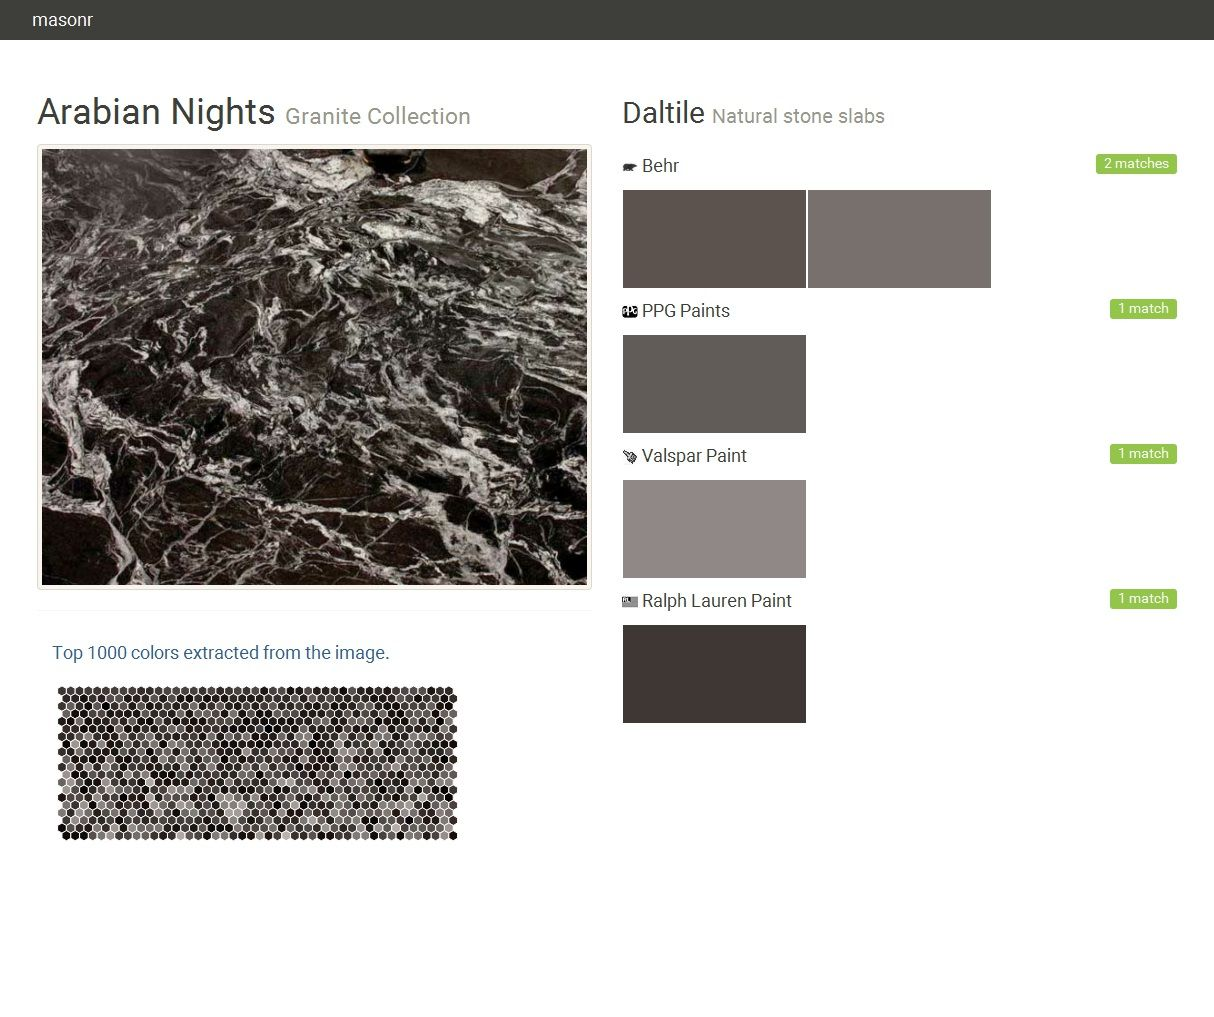 arabian nights. granite collection . natural stone slabs. daltile